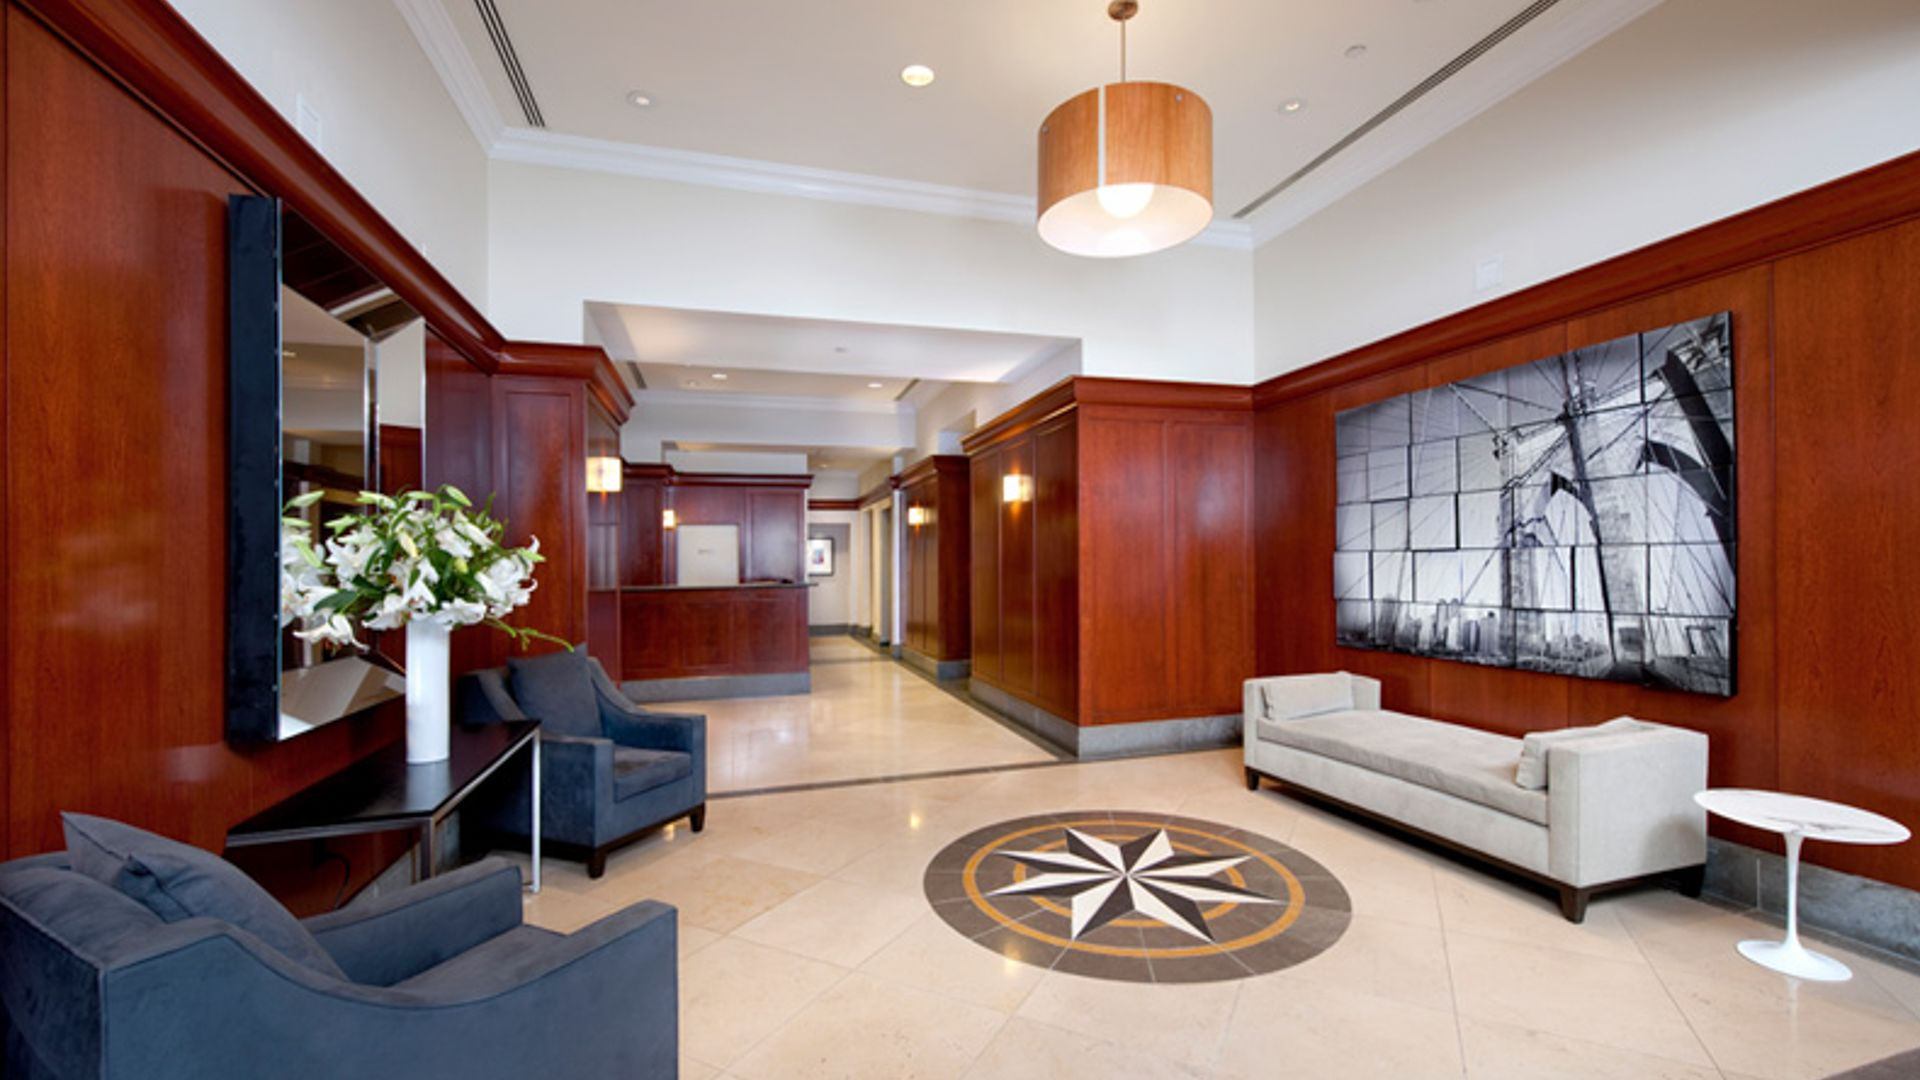 180 Montague Apartments - Lobby